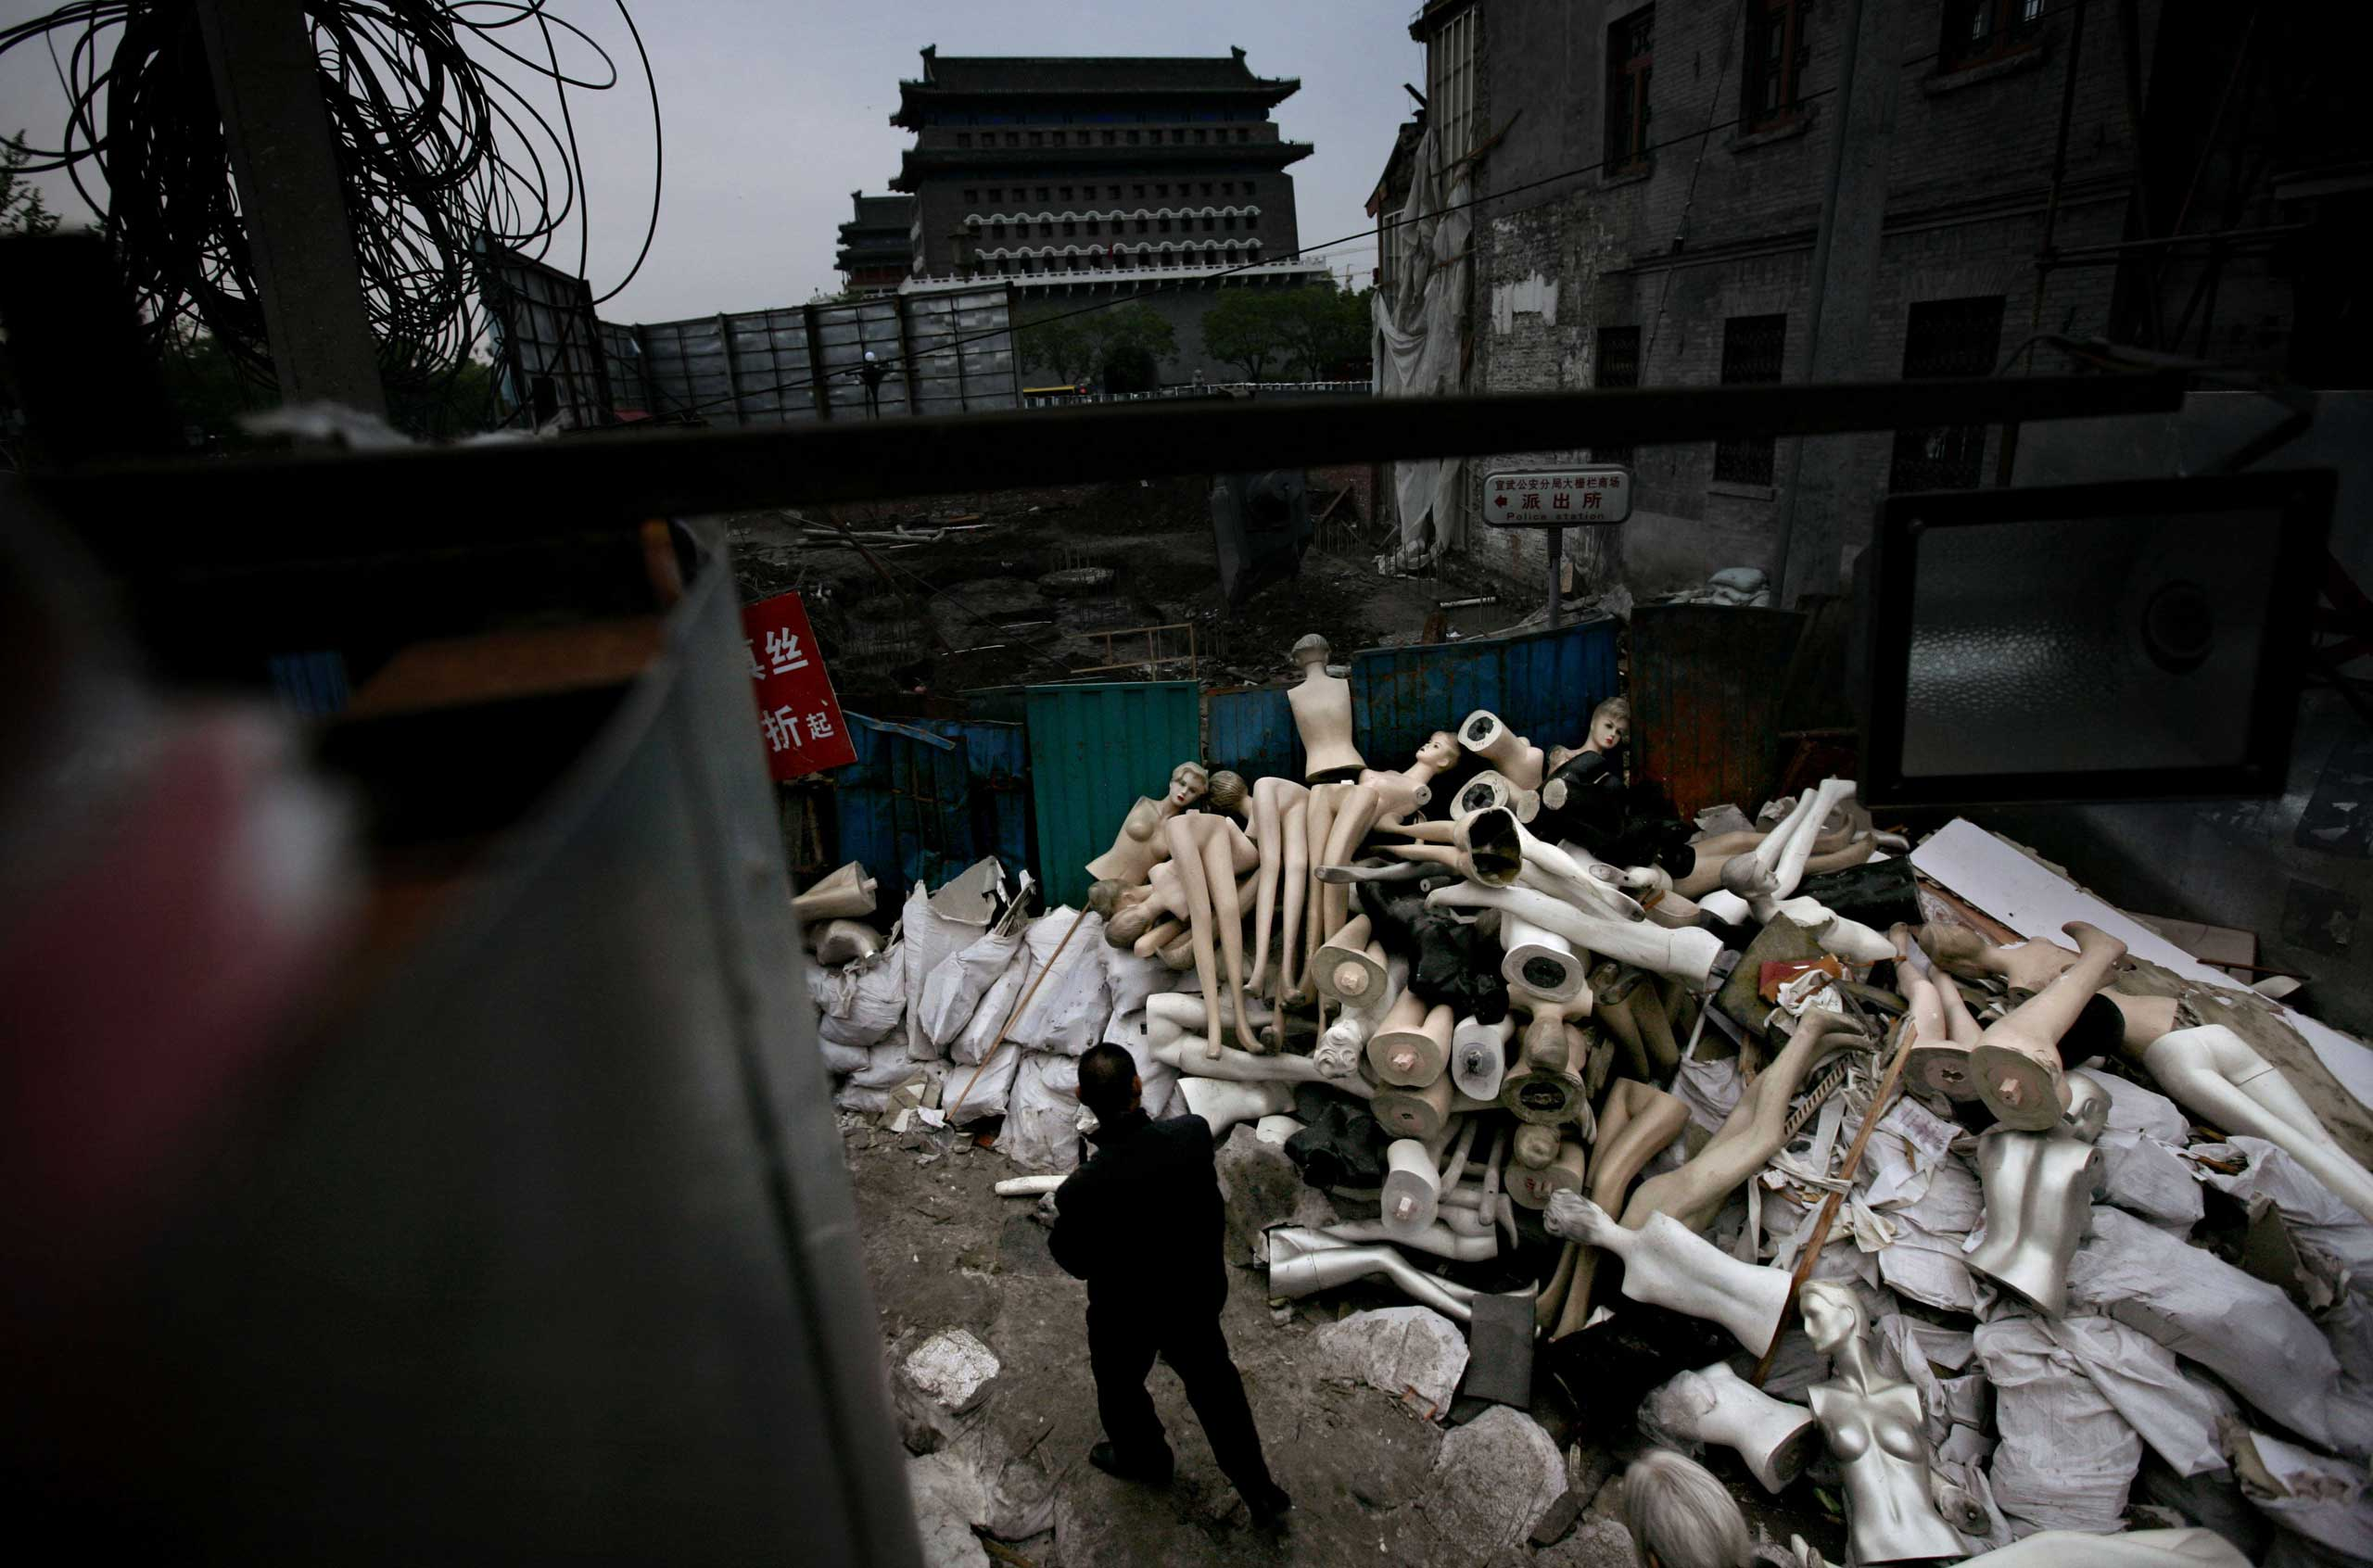 A Chinese man walks by mannequins amongst the rubble of demolished shops in Beijing.